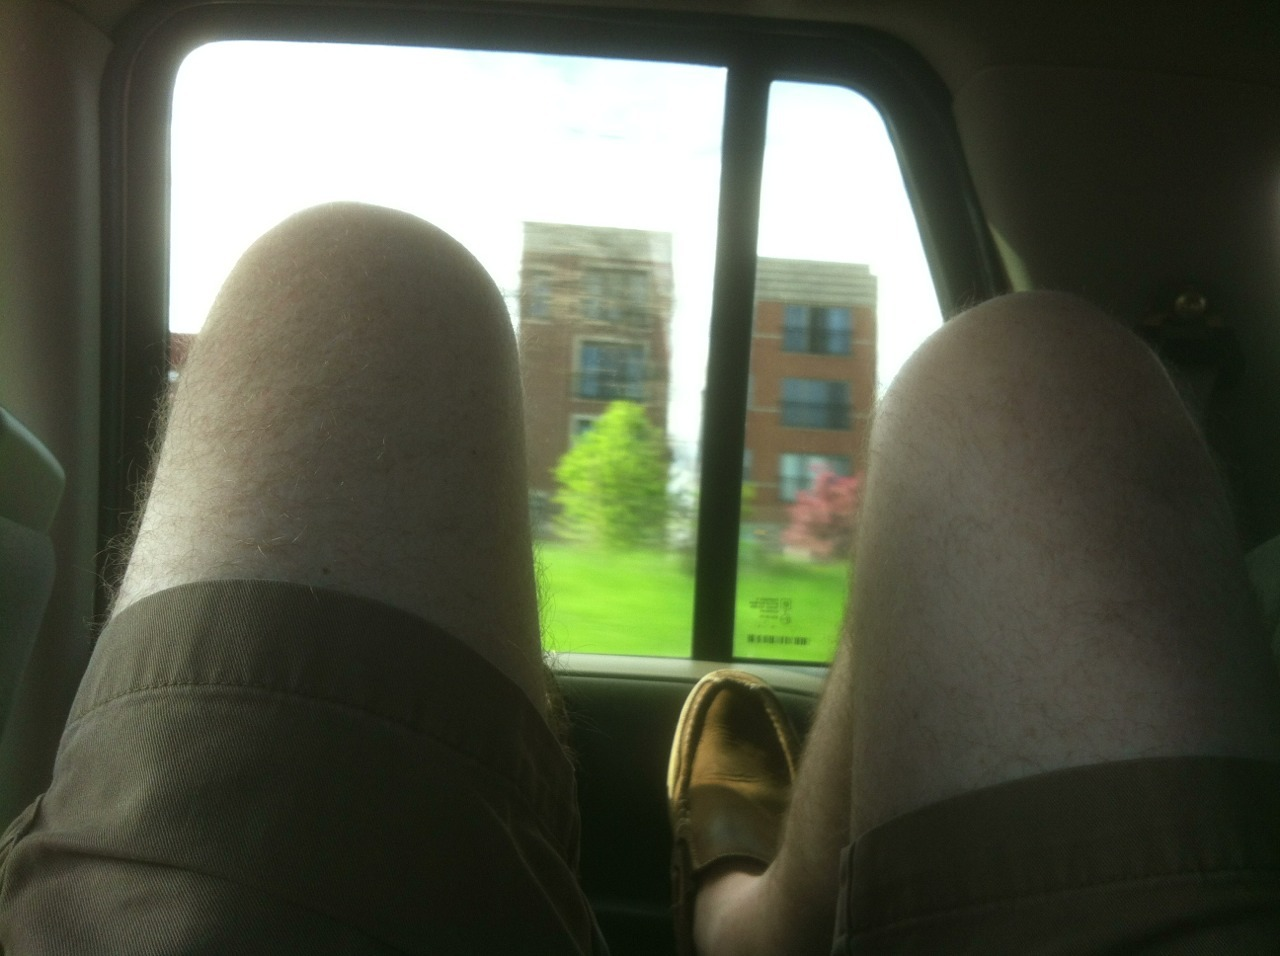 Gratuitous picture of my knees. This is how I ride in cars at the moment.